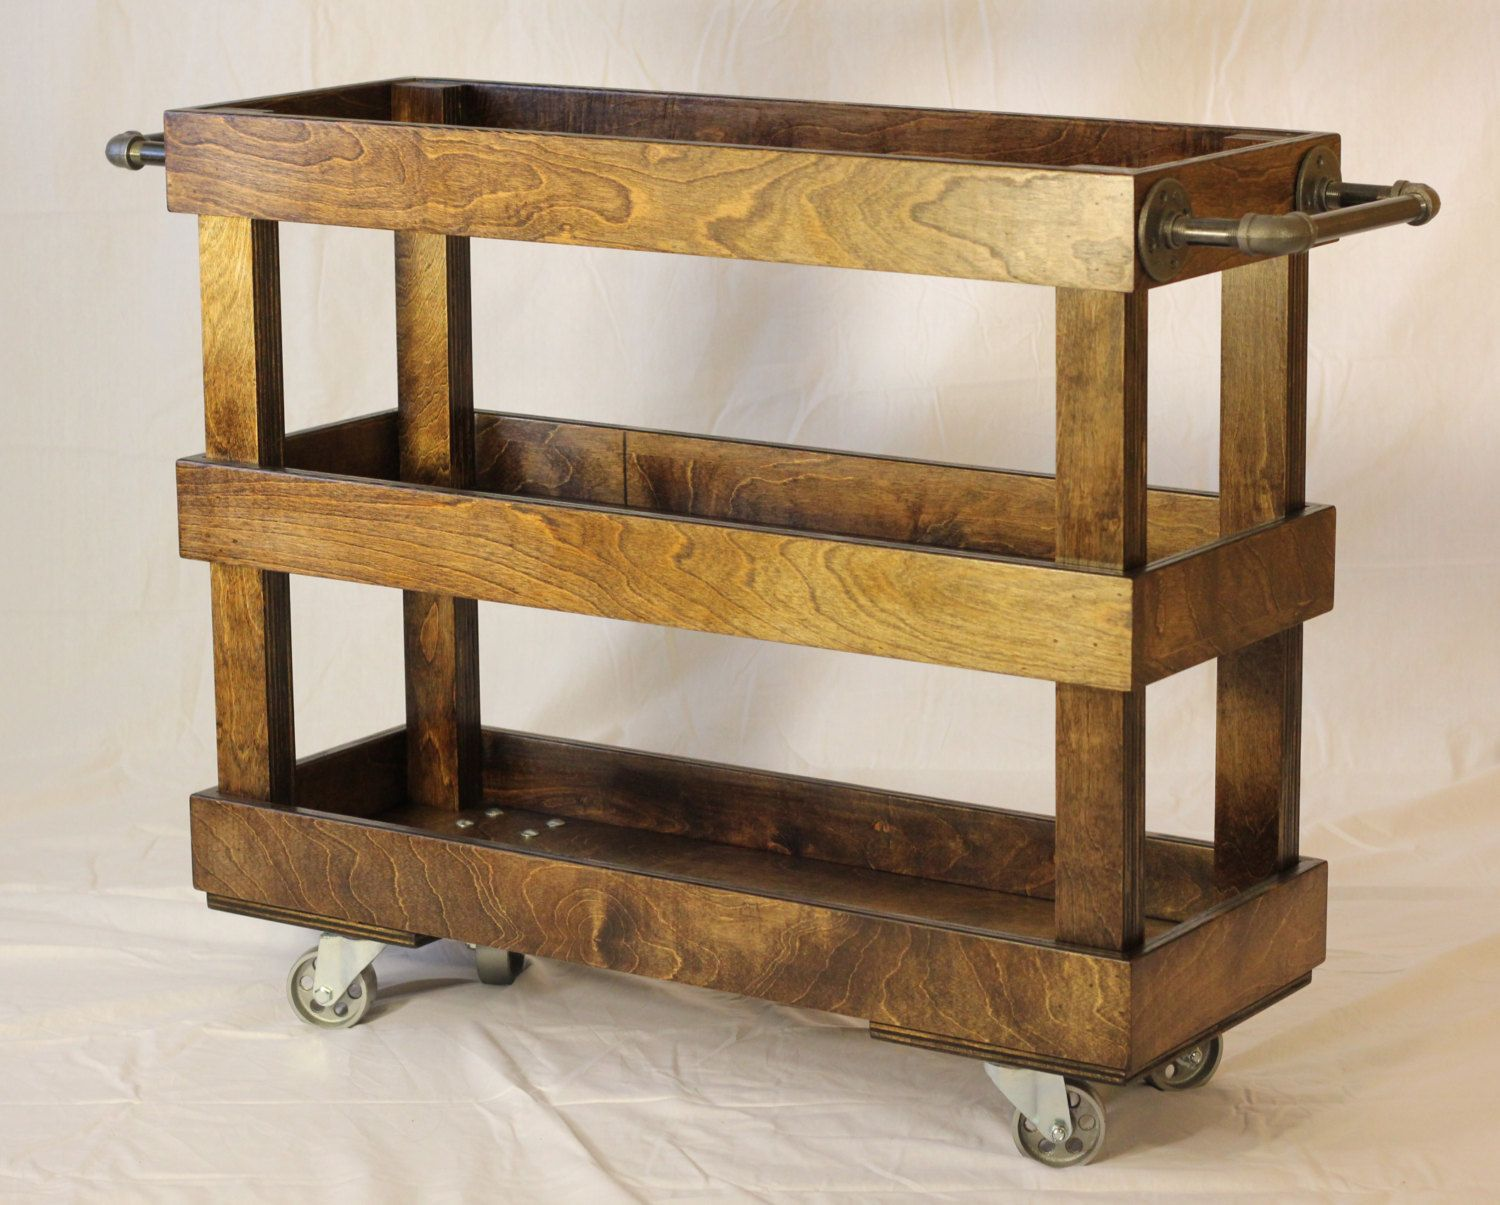 Wood Kitchen Cart With Casters And Industrial Pipe Towel Bars Amazing Rustic Kitchen Cart Design Ideas